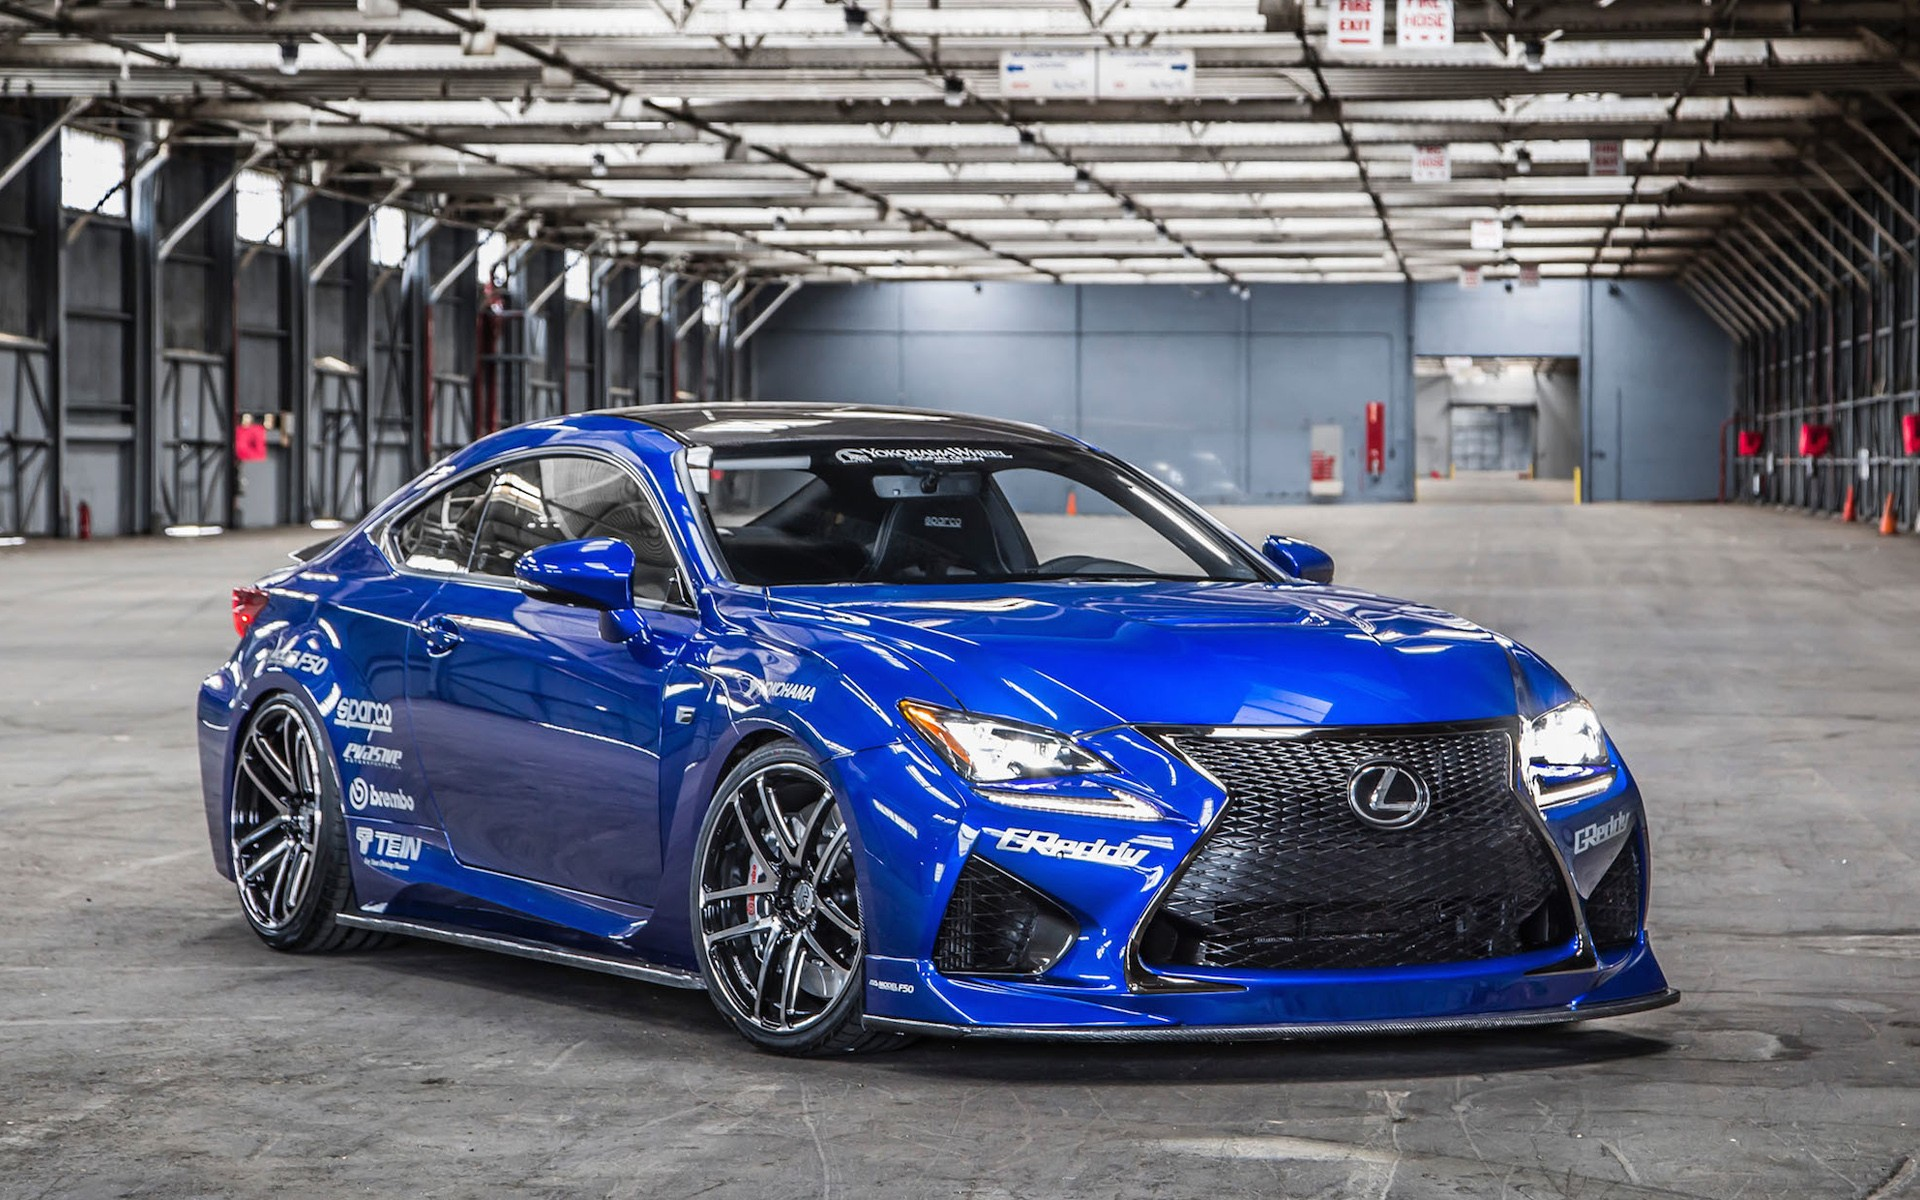 Mercedes Modified Cars Wallpapers 2014 Lexus Rc F By Gordon Ting Wallpaper Hd Car